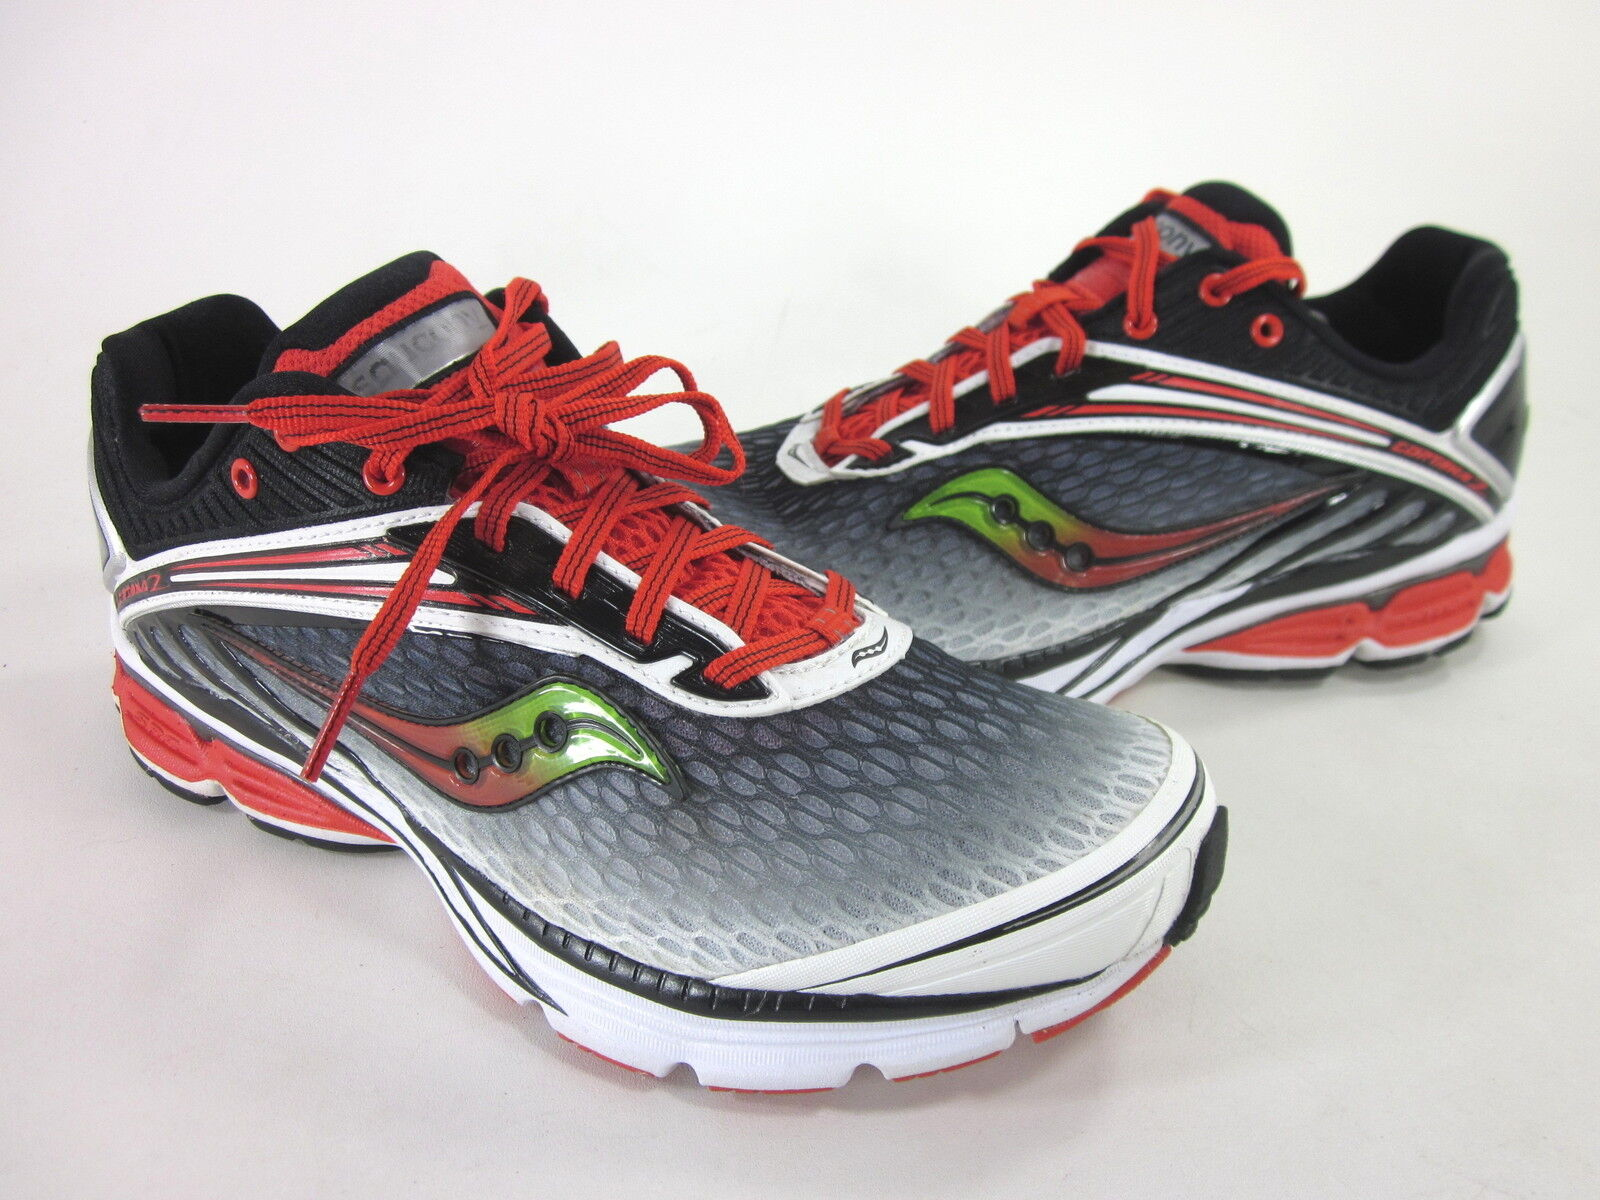 SAUCONY MEN'S CORTANA 2 RUNNING SHOE BLACK WHITE RED SYNTHETIC US SIZE 9 M